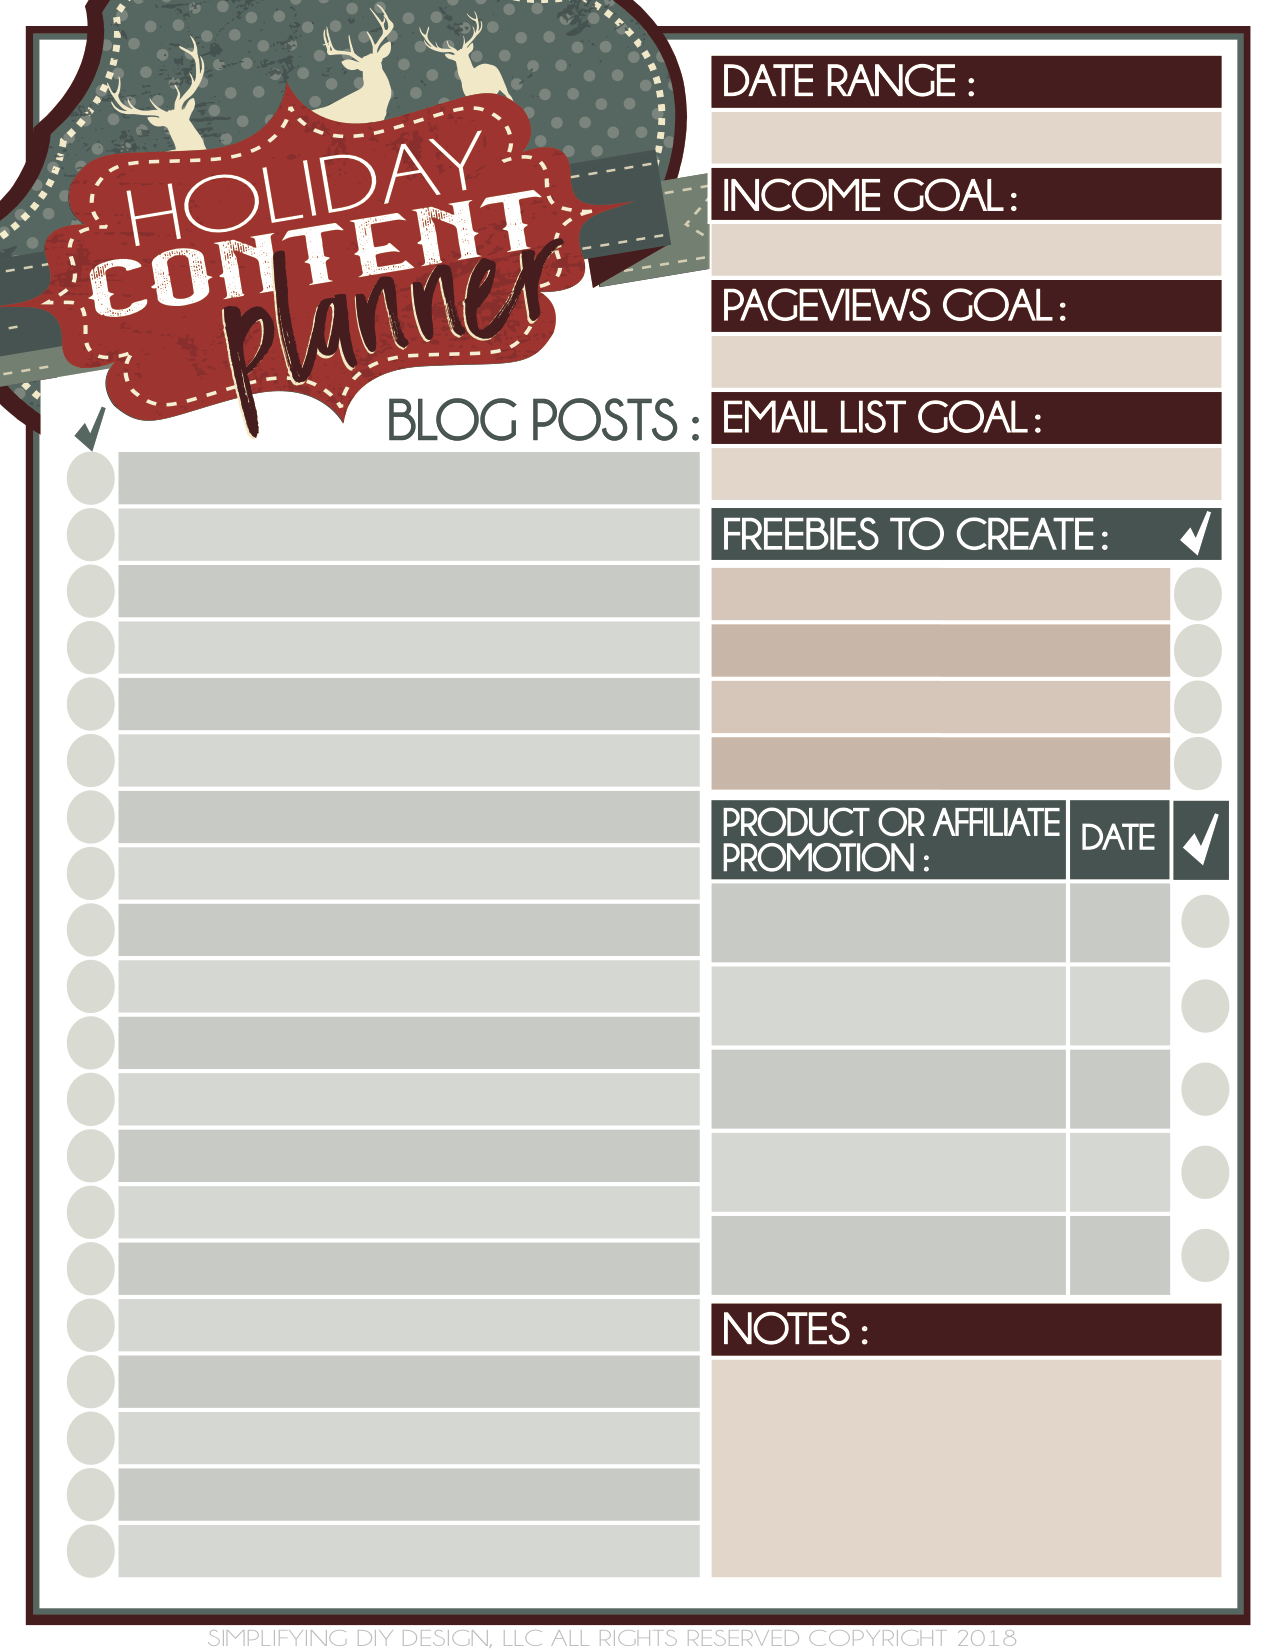 This holiday content planner will help you plan your fourth quarter and your holiday content so that you can get more blog traffic, more subscribers, and more income! Free printable! #freeprintable #holidaycontent #blogplanner #simplifyingdiydesign